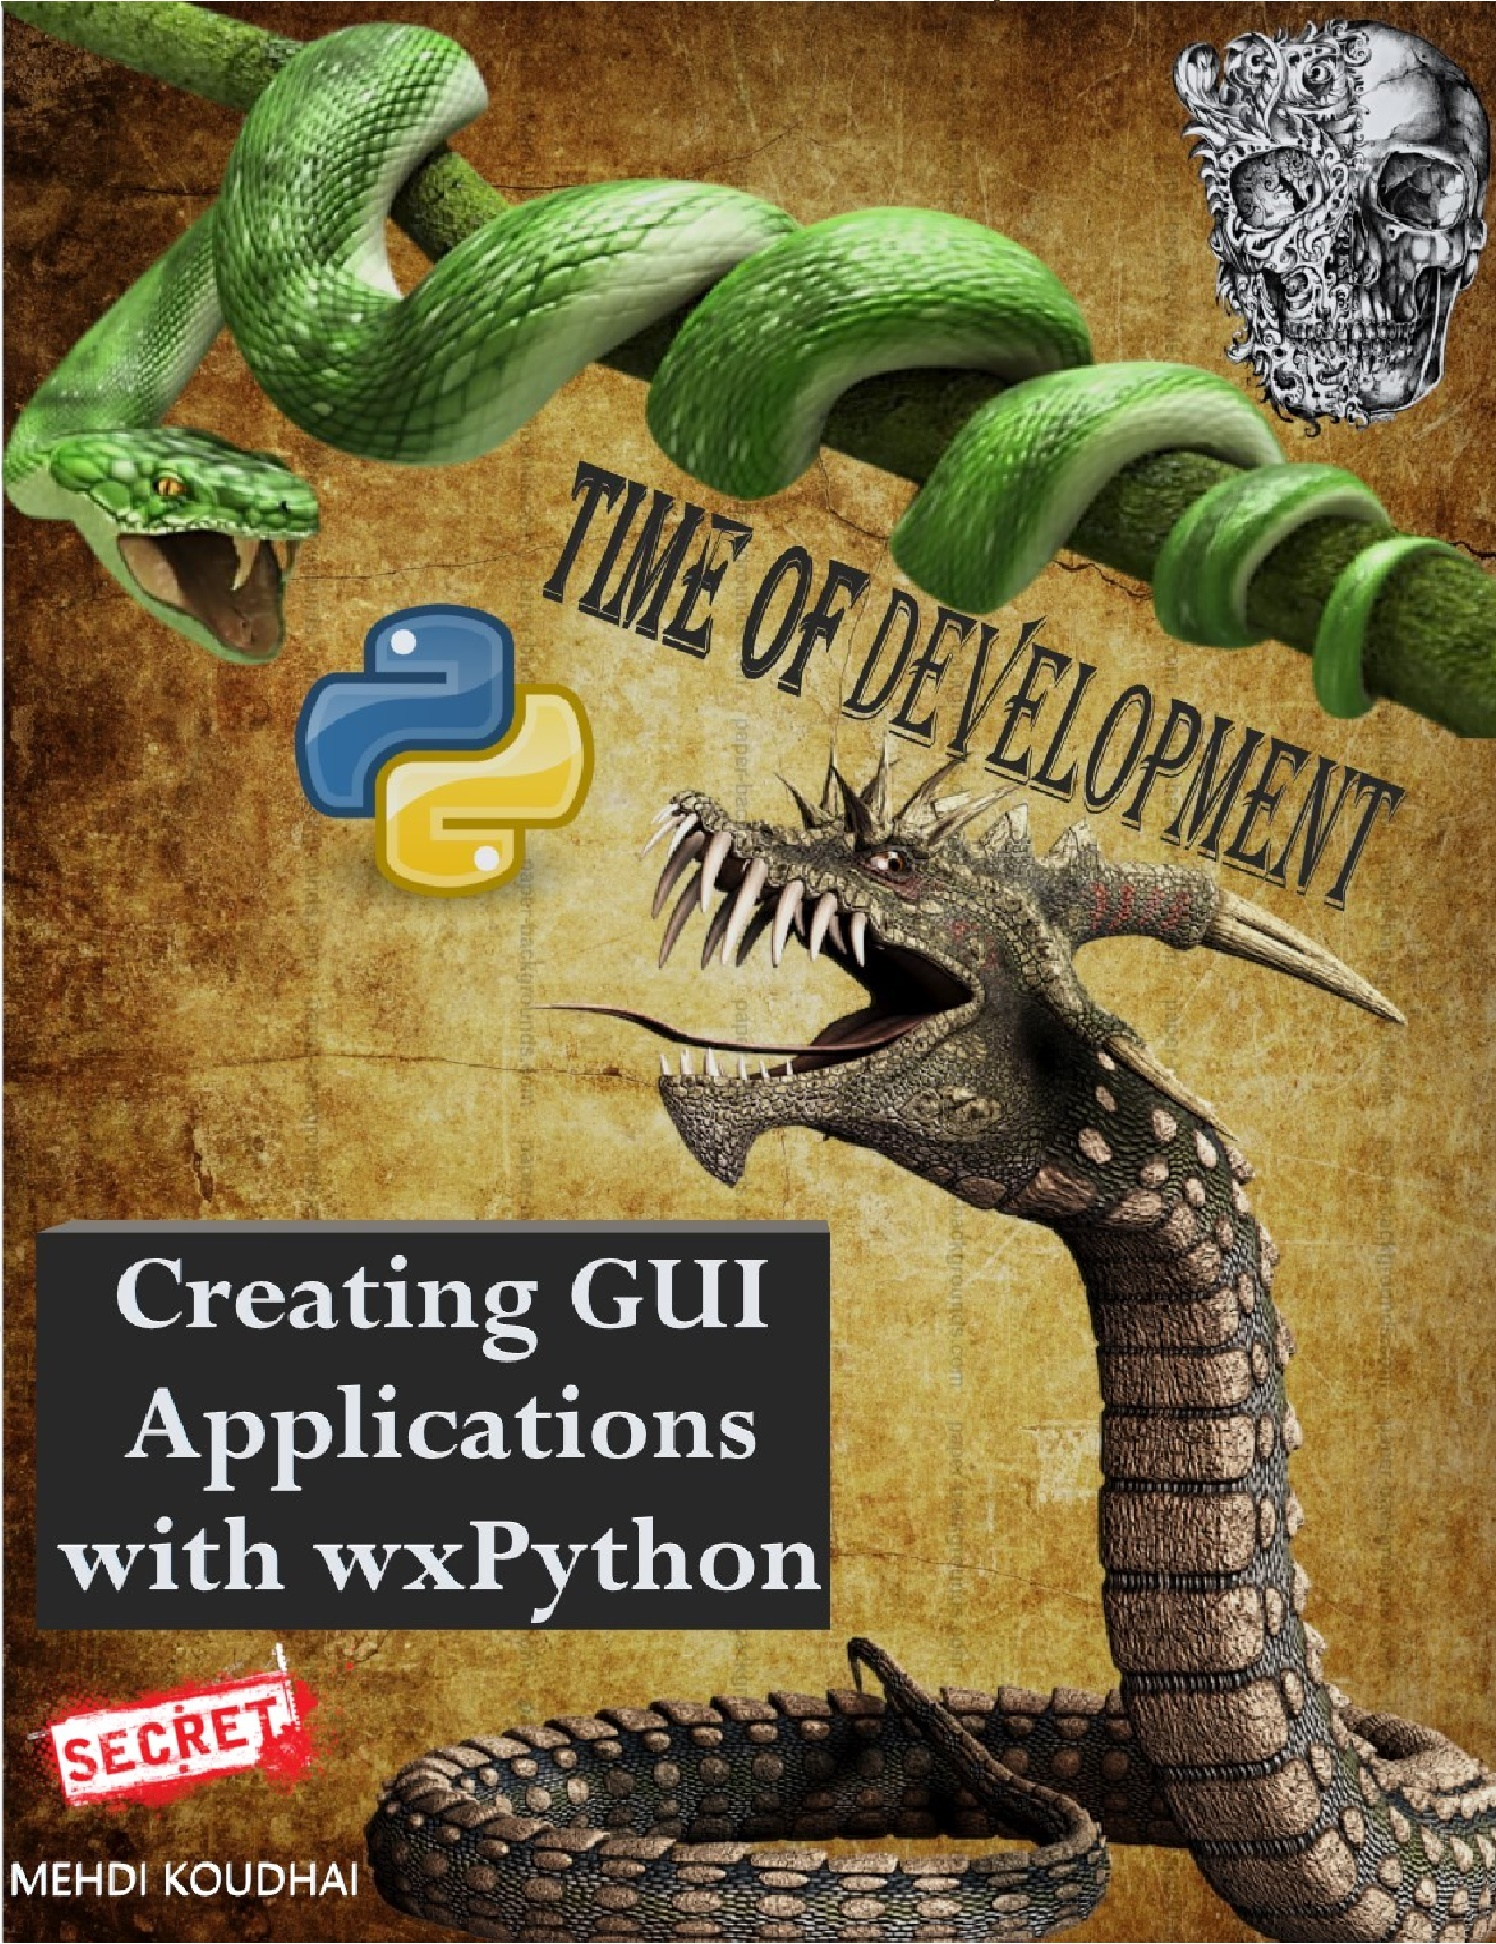 Creating GUI Applications with wxPython, an Ebook by MEHDI KOUDHAI